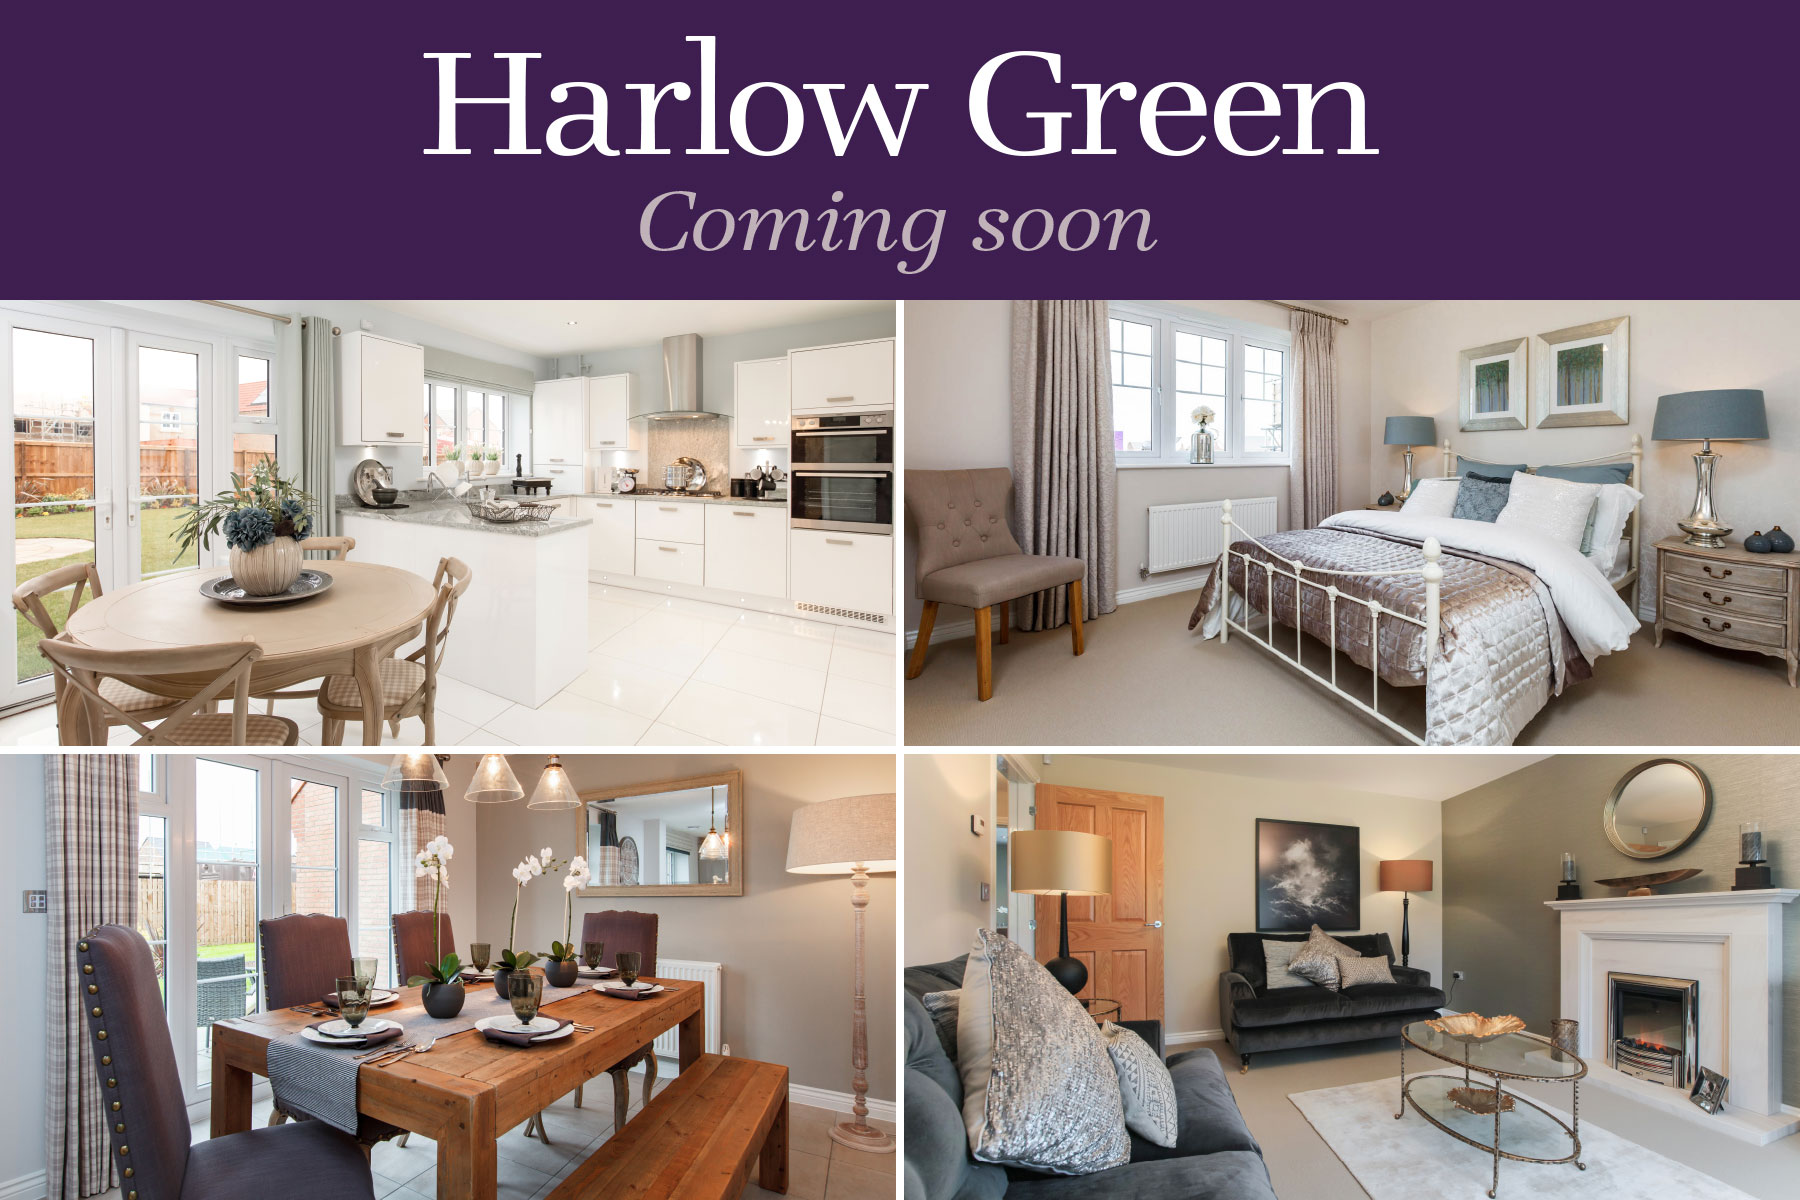 TWNY-Harlow-Green-Coming-soon-1800x1200px